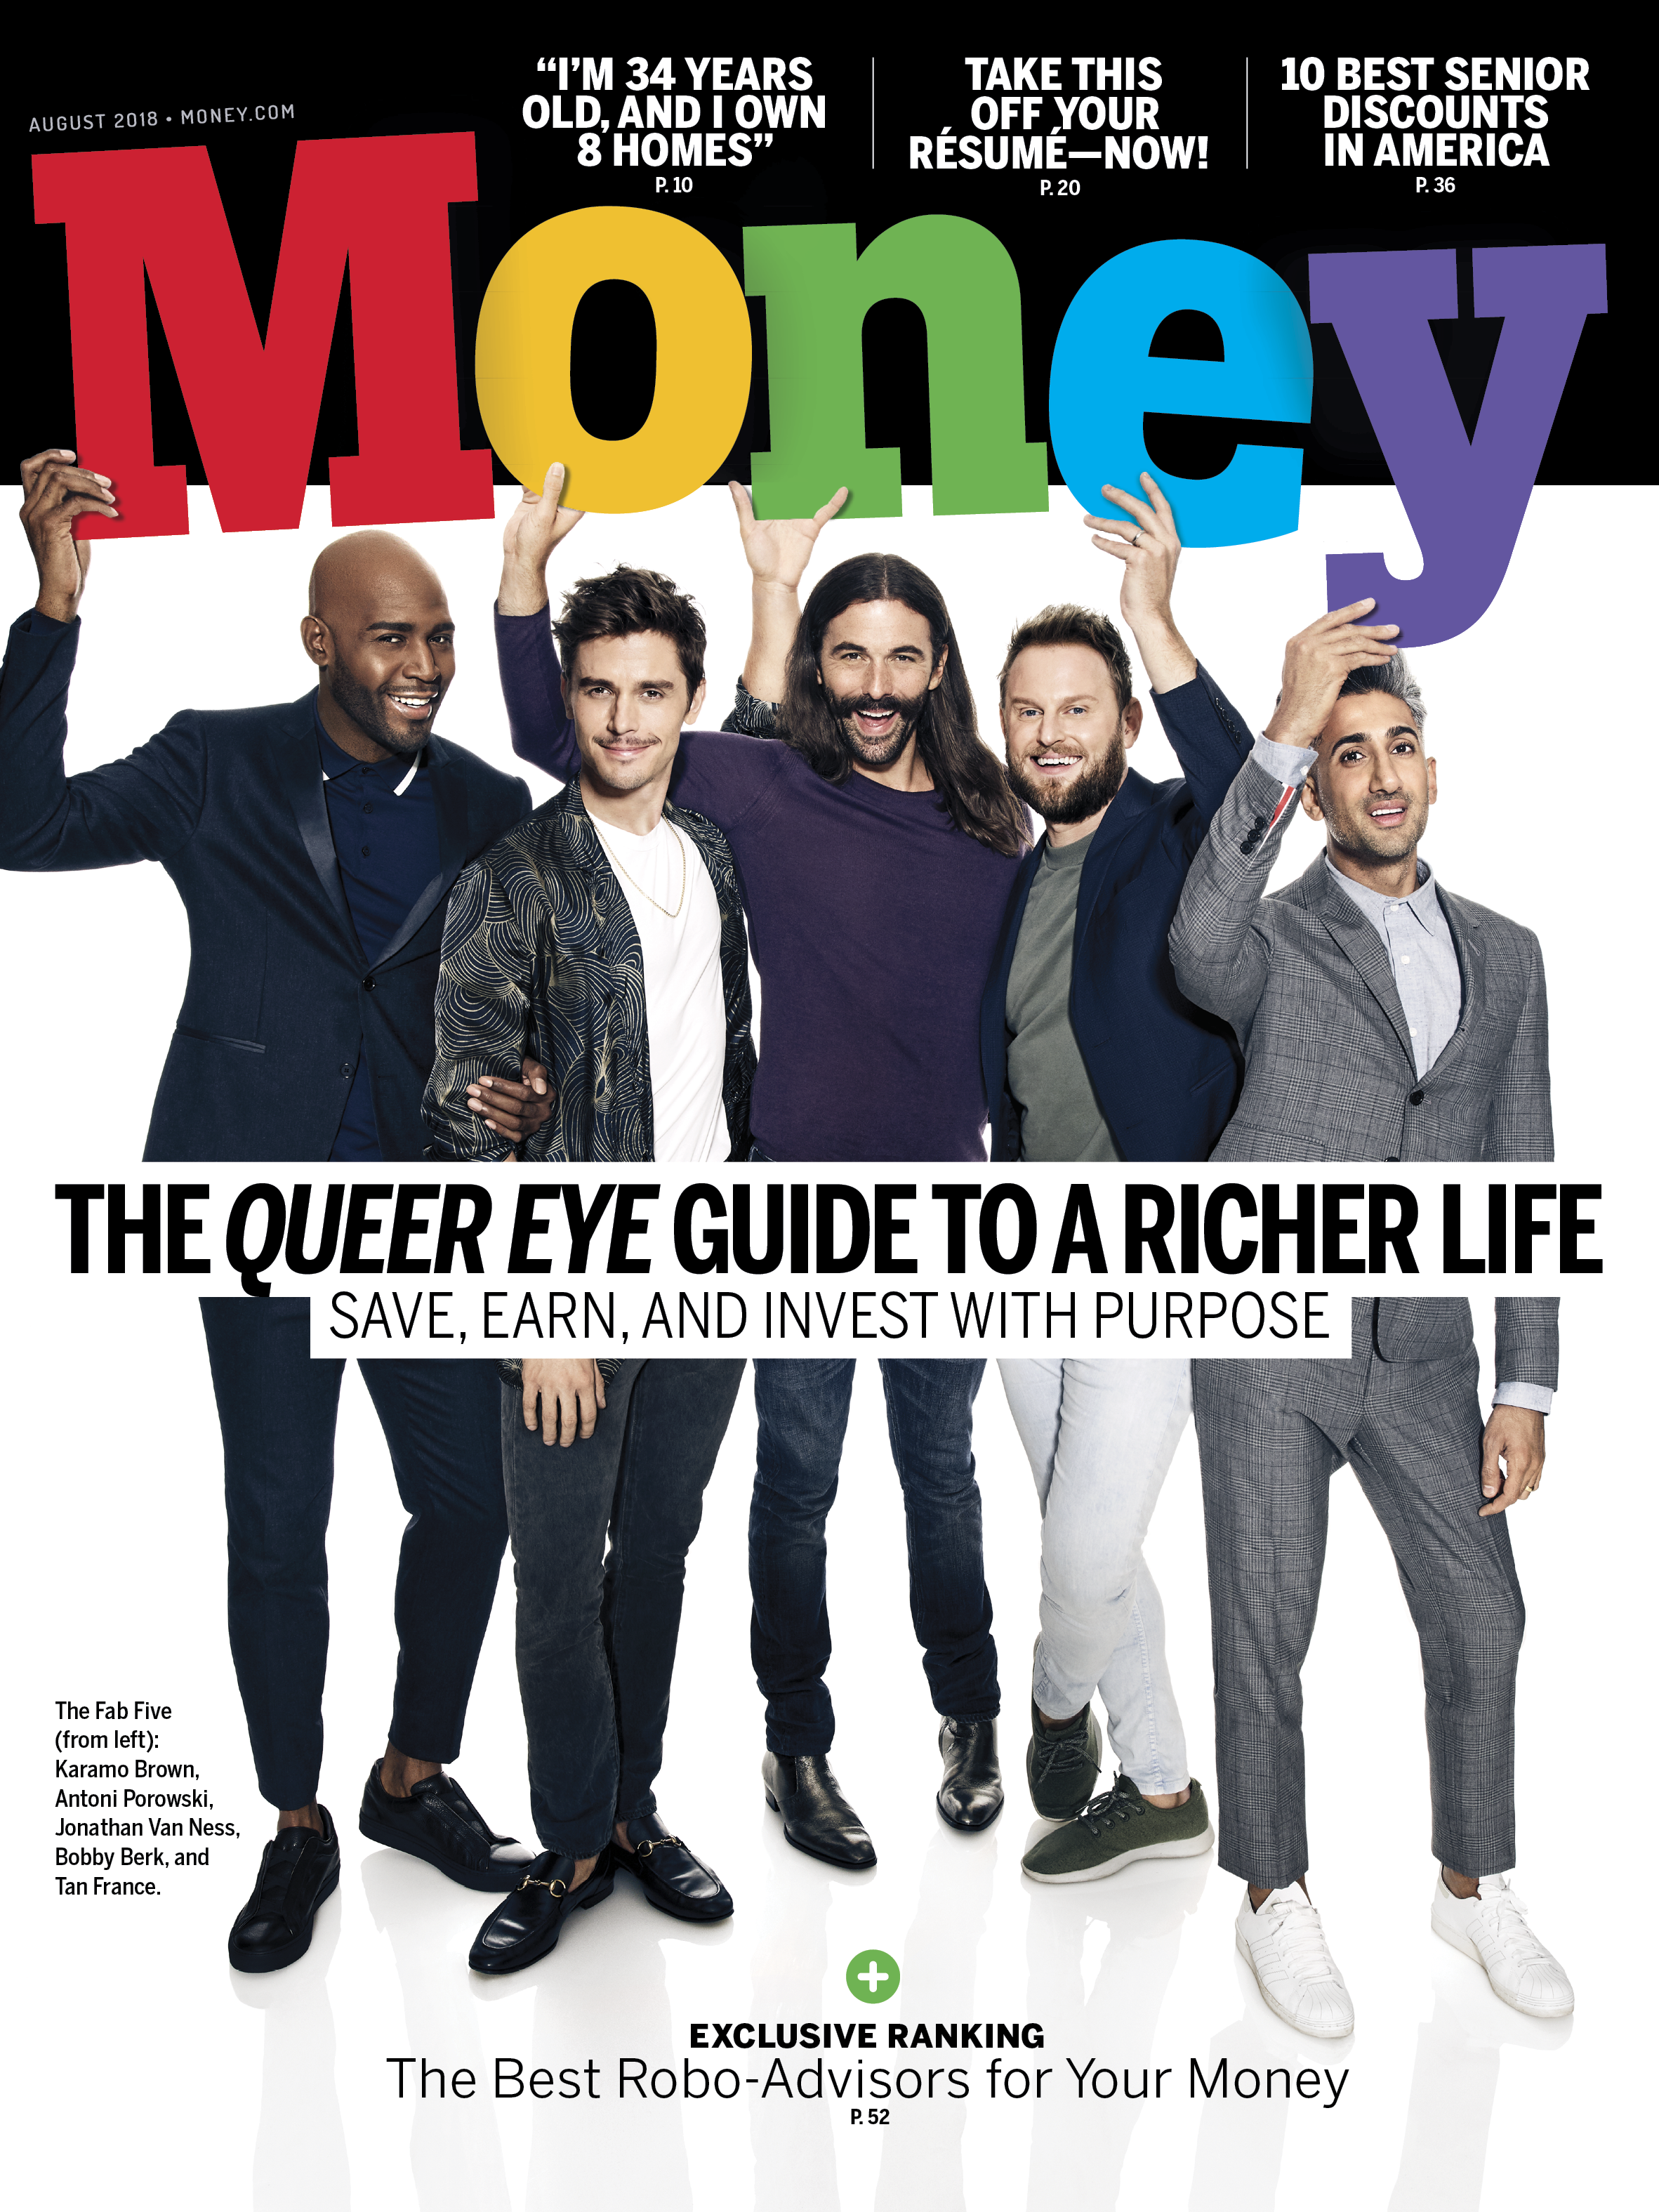 The Queer Eye Guide to a Richer Life